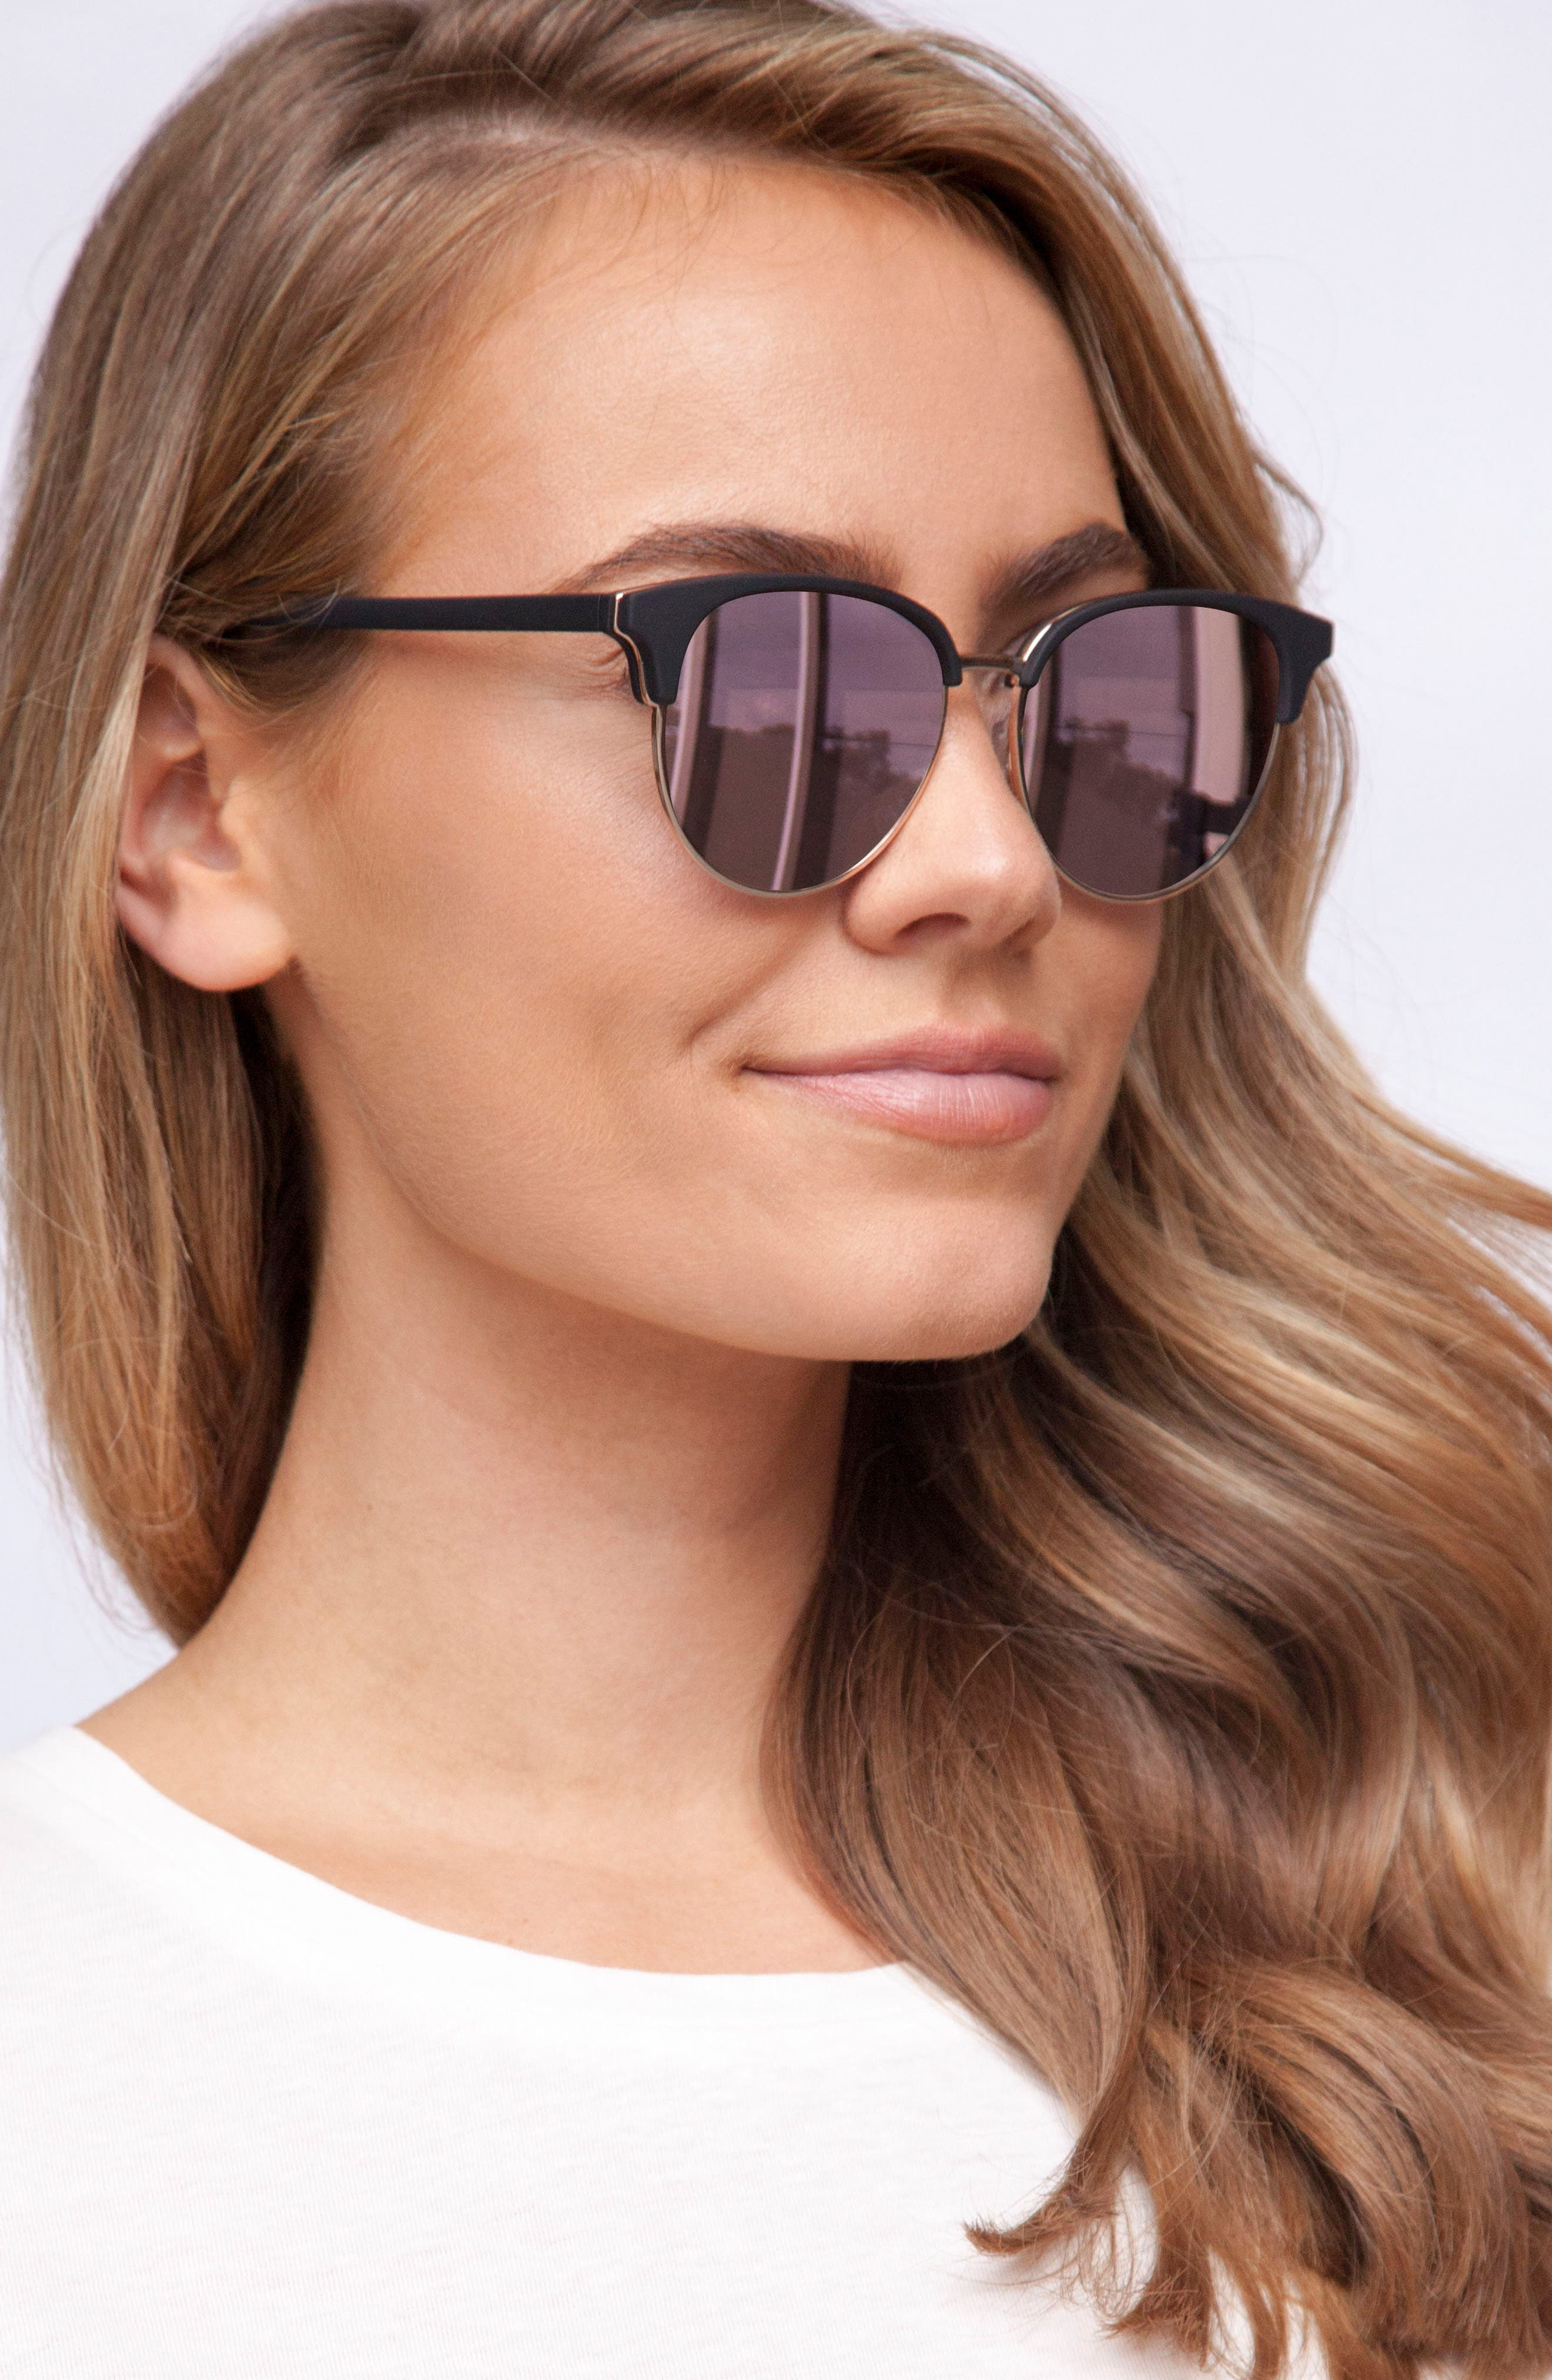 Deja Vu 51mm Round Sunglasses,                             Alternate thumbnail 4, color,